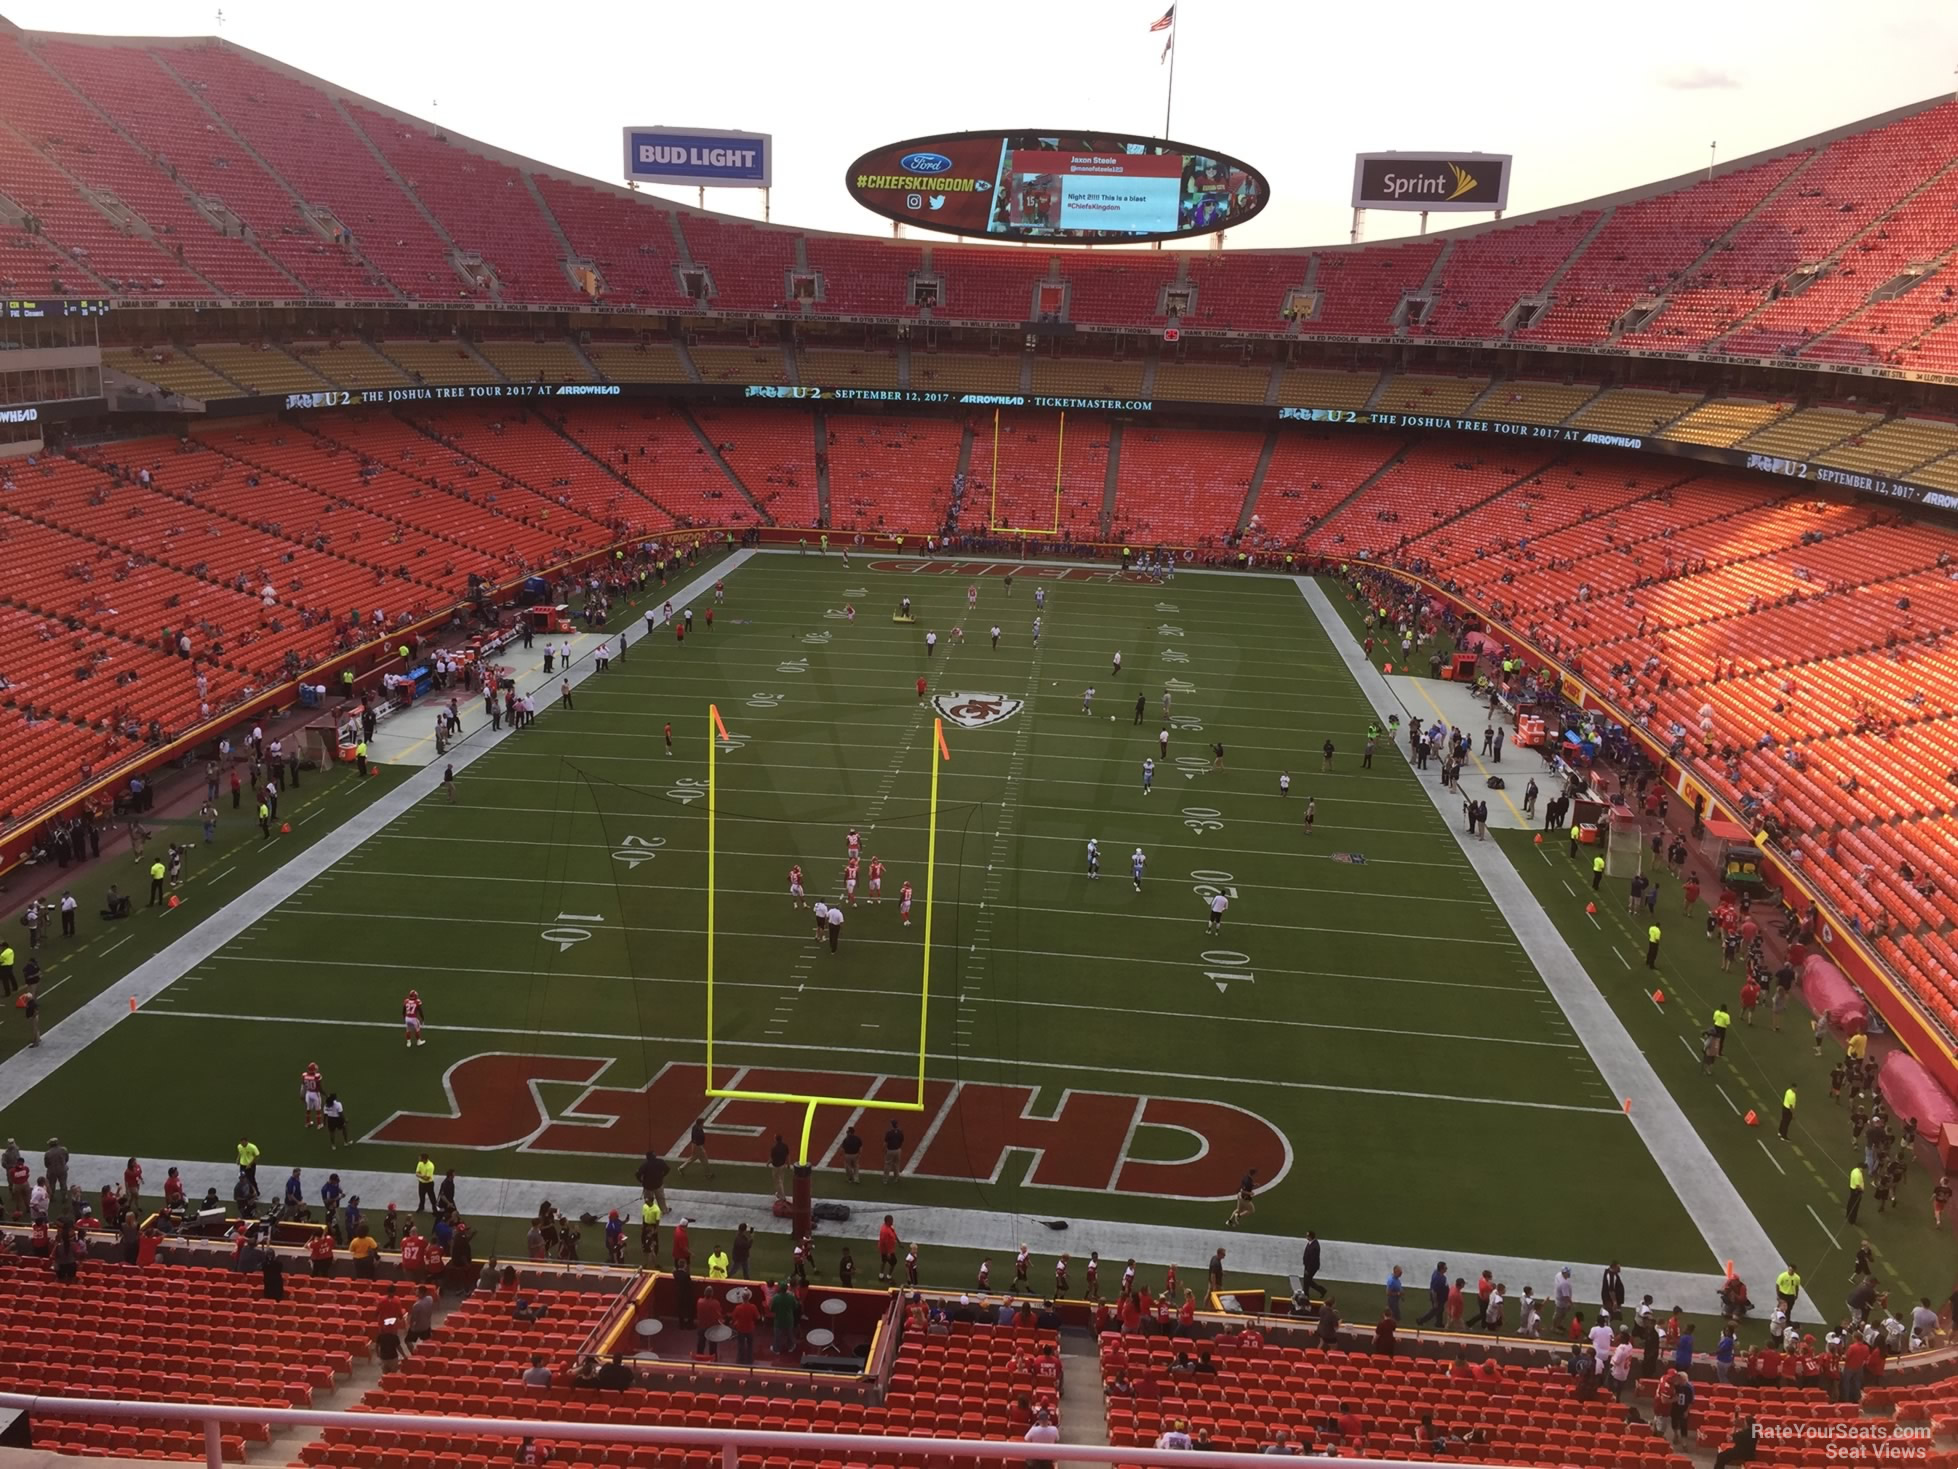 Seat View for Arrowhead Stadium Section 312, Row 7